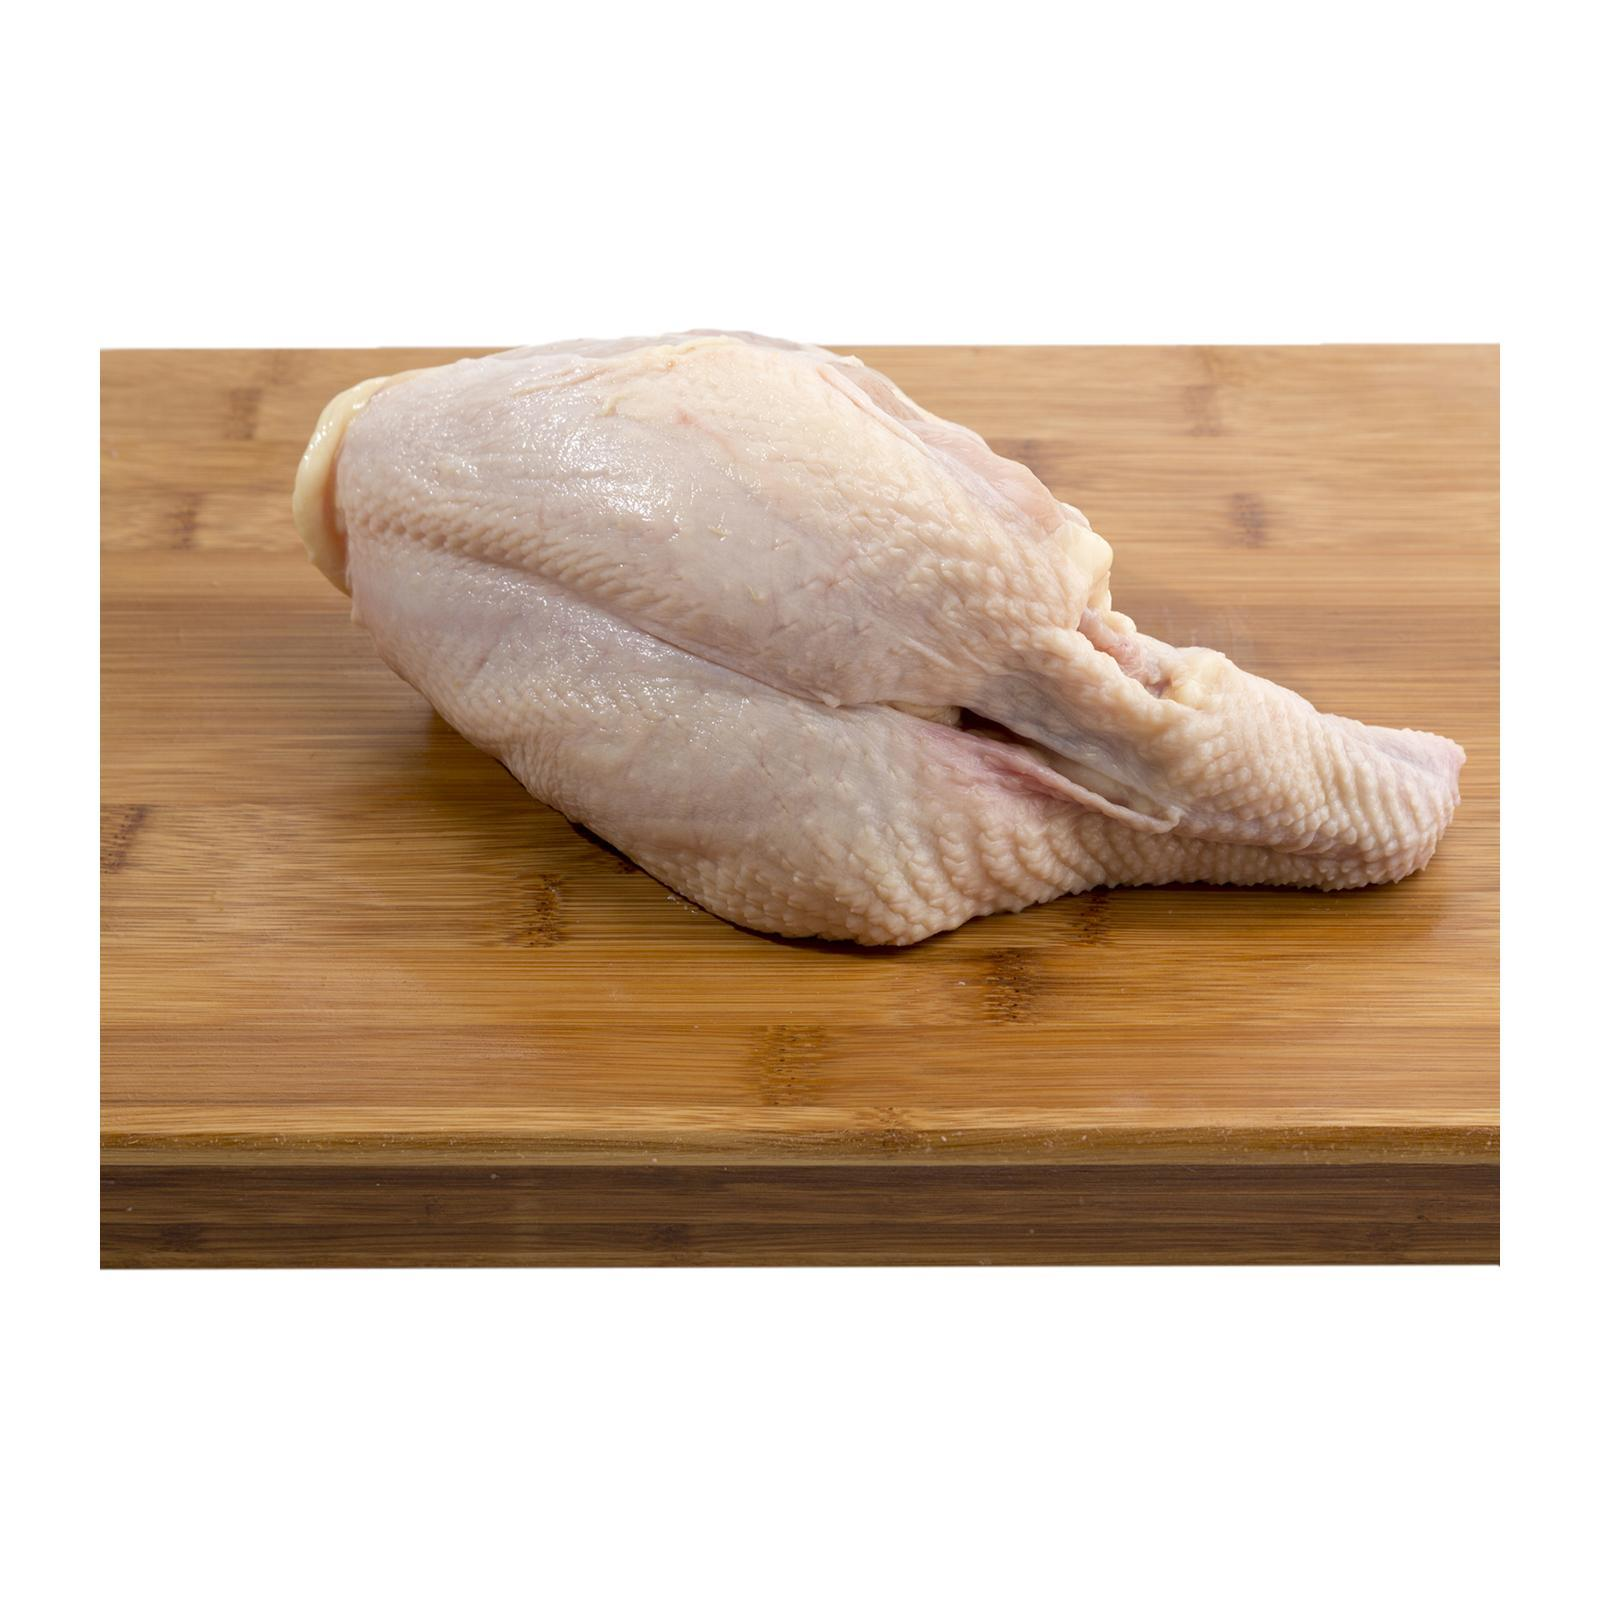 AW'S Market Fresh Whole Chicken Breast